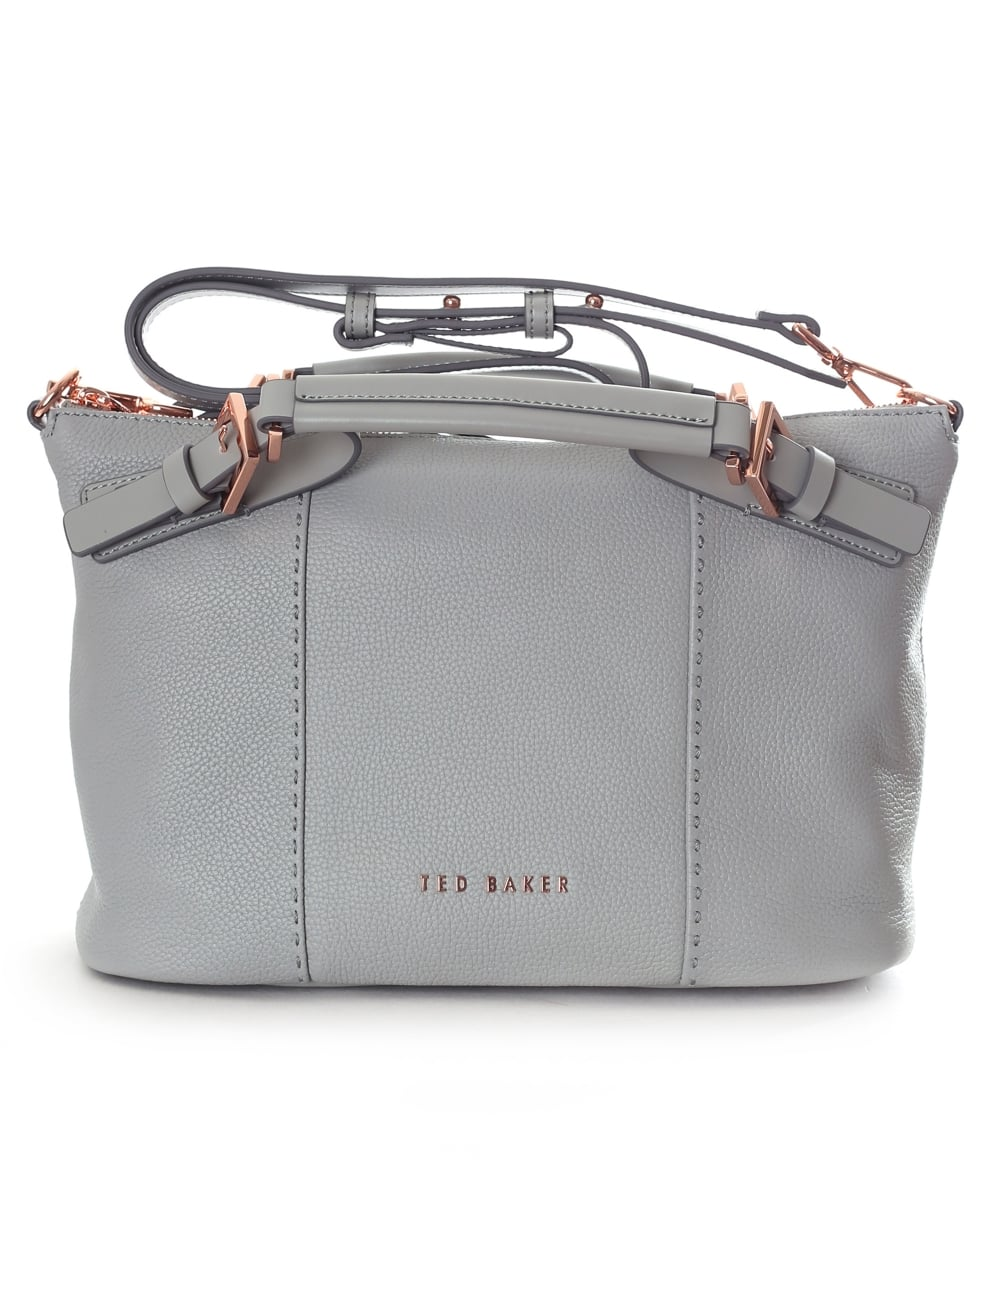 fb85c5a53456 Ted baker Salbett Women s Bridle Handle Small Tote bag